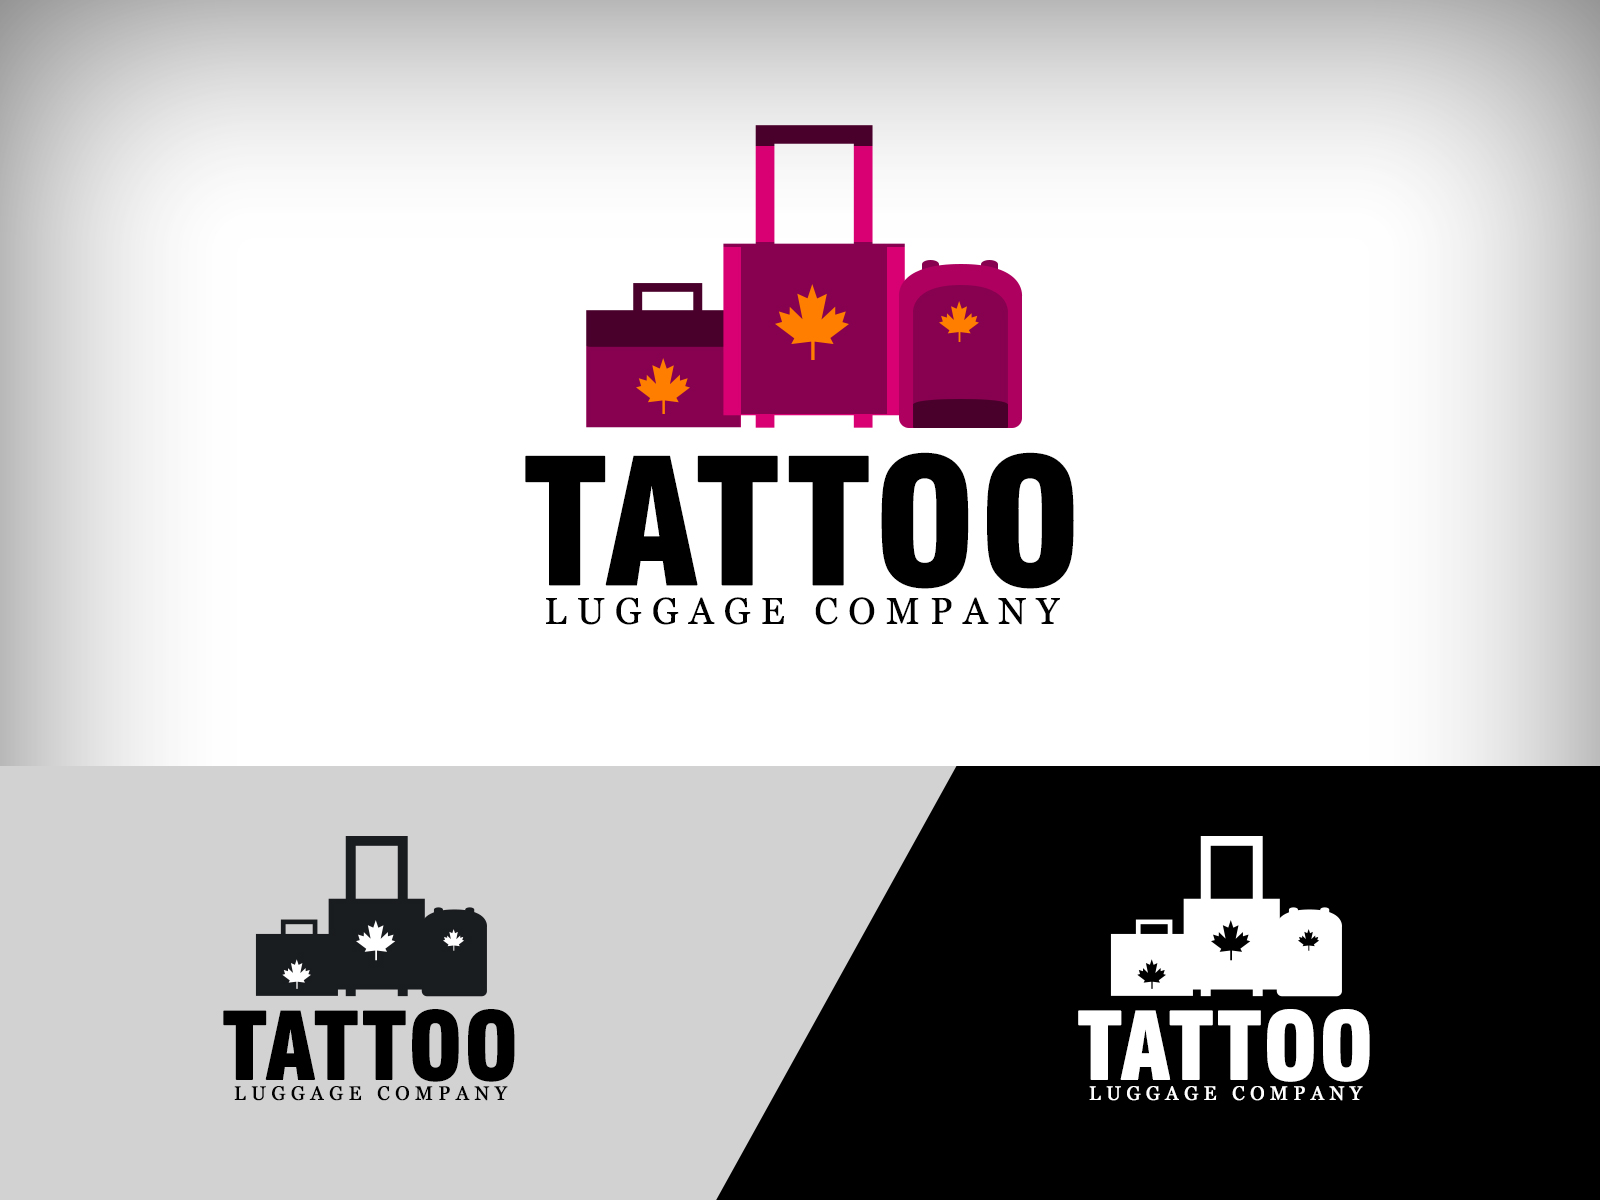 Logo Design by Virgilio Pineda III - Entry No. 88 in the Logo Design Contest Artistic Logo Design for Tattoo Luggage Company.